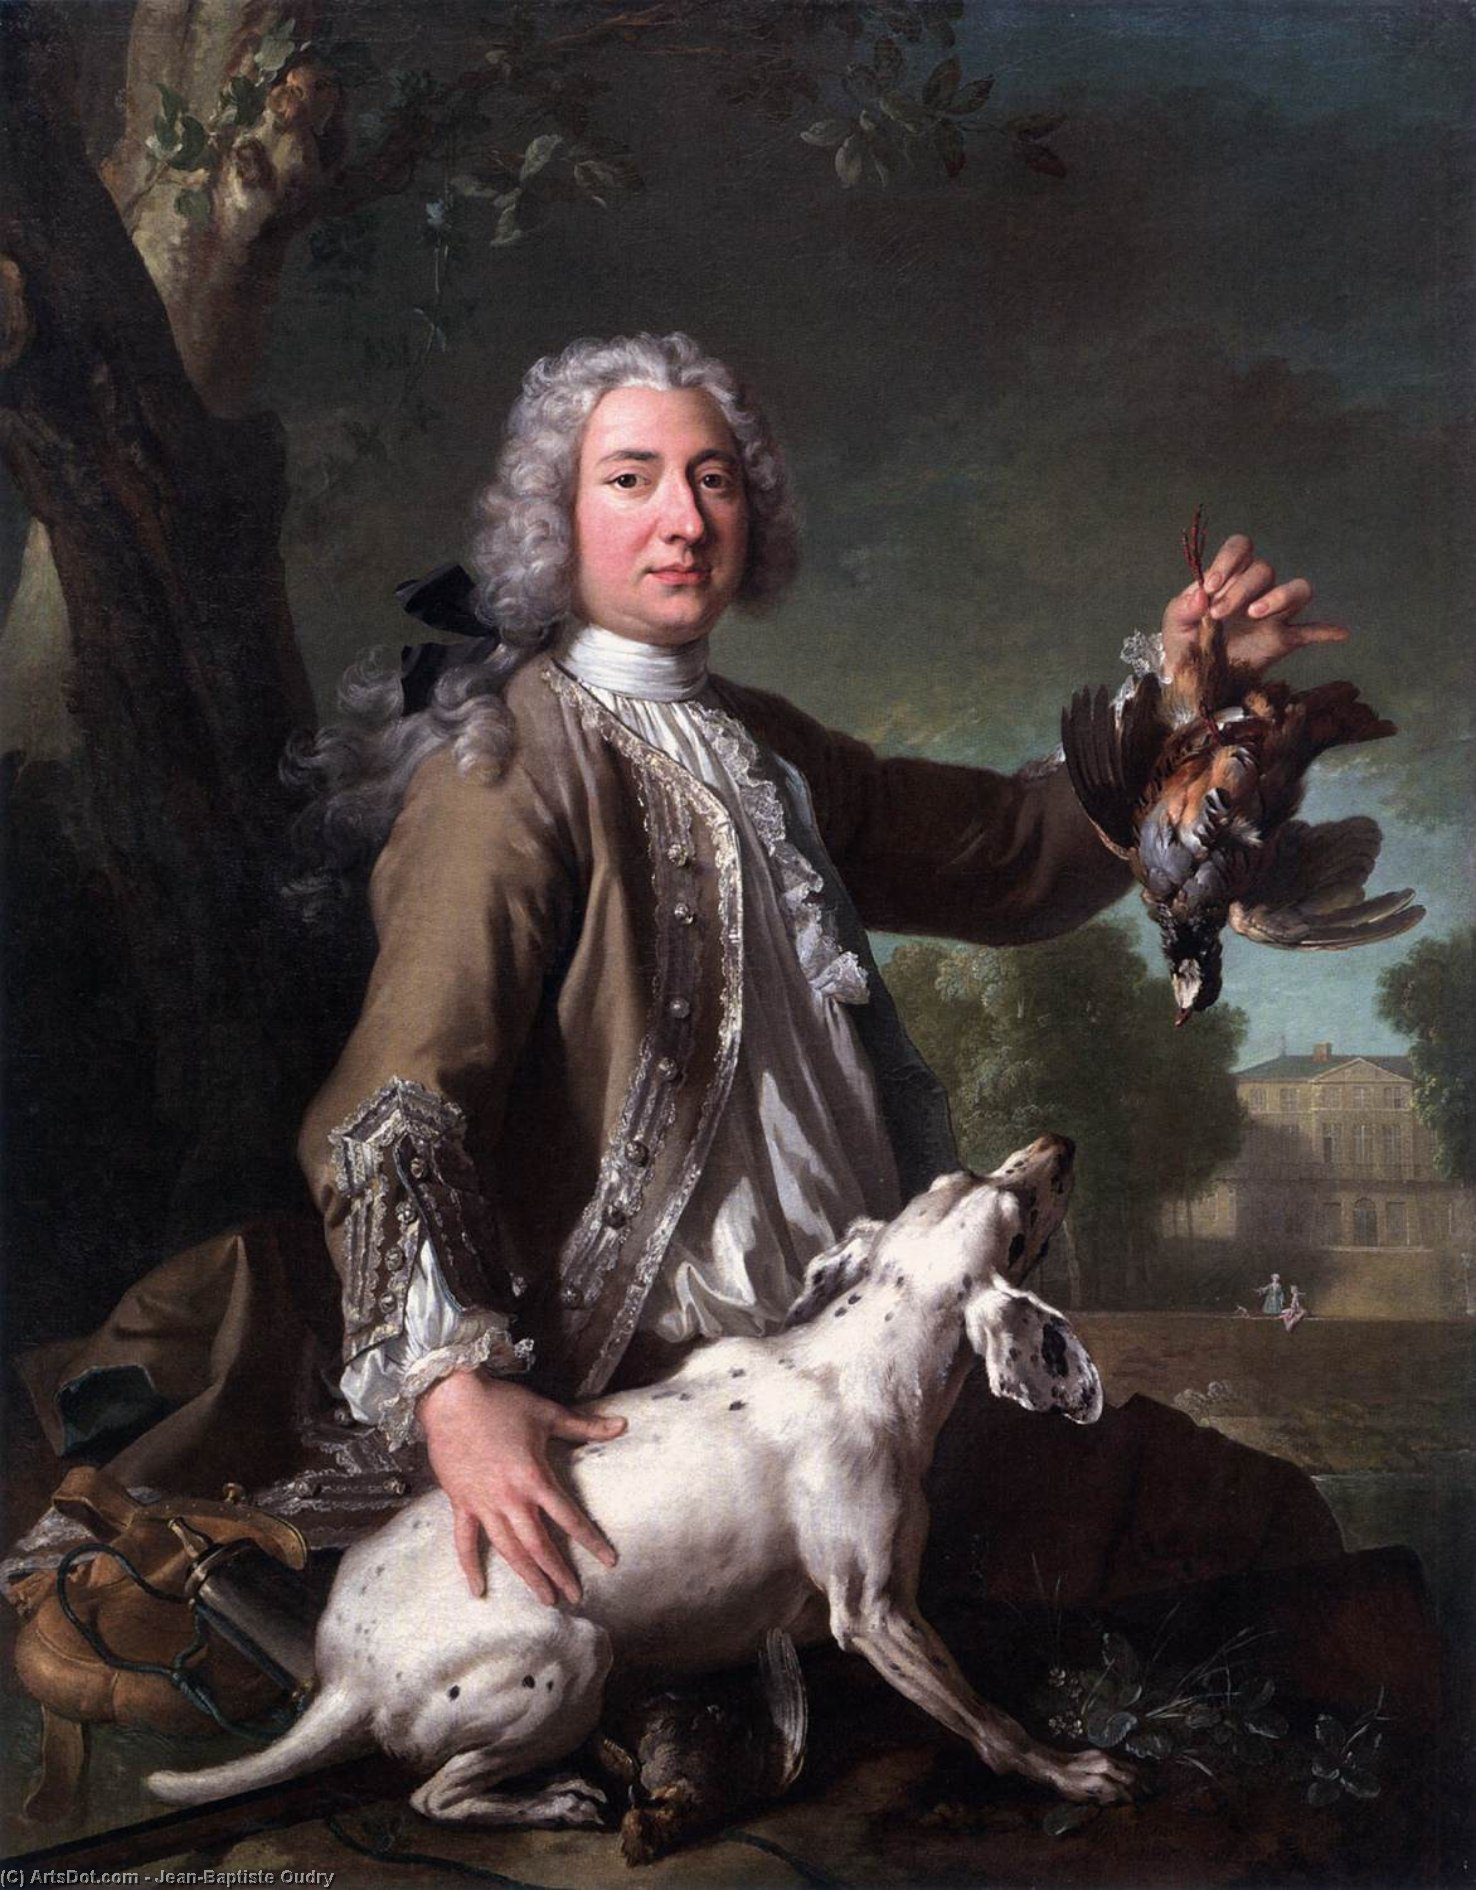 Henri Camille, Chevalier de Beringhen, Oil On Canvas by Jean-Baptiste Oudry (1686-1755, France)